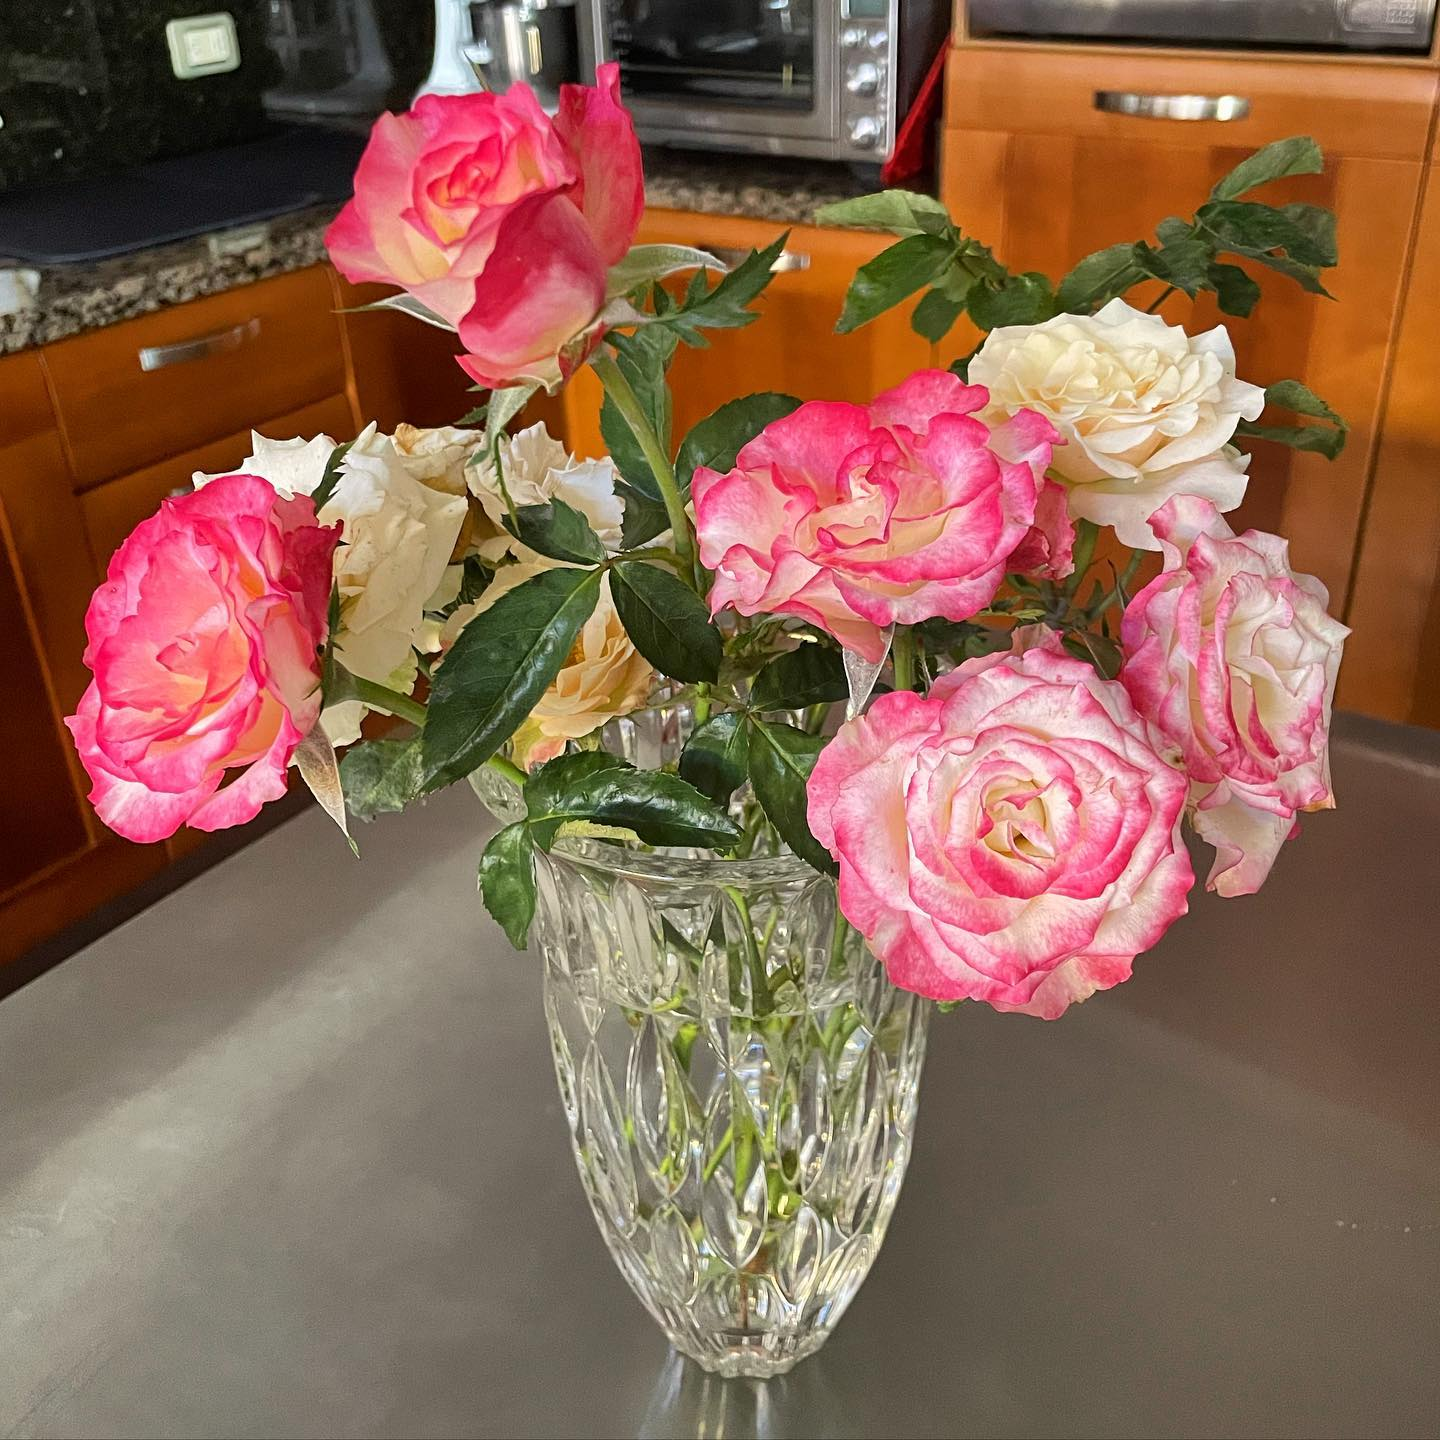 An entire vase of roses from my own garden!